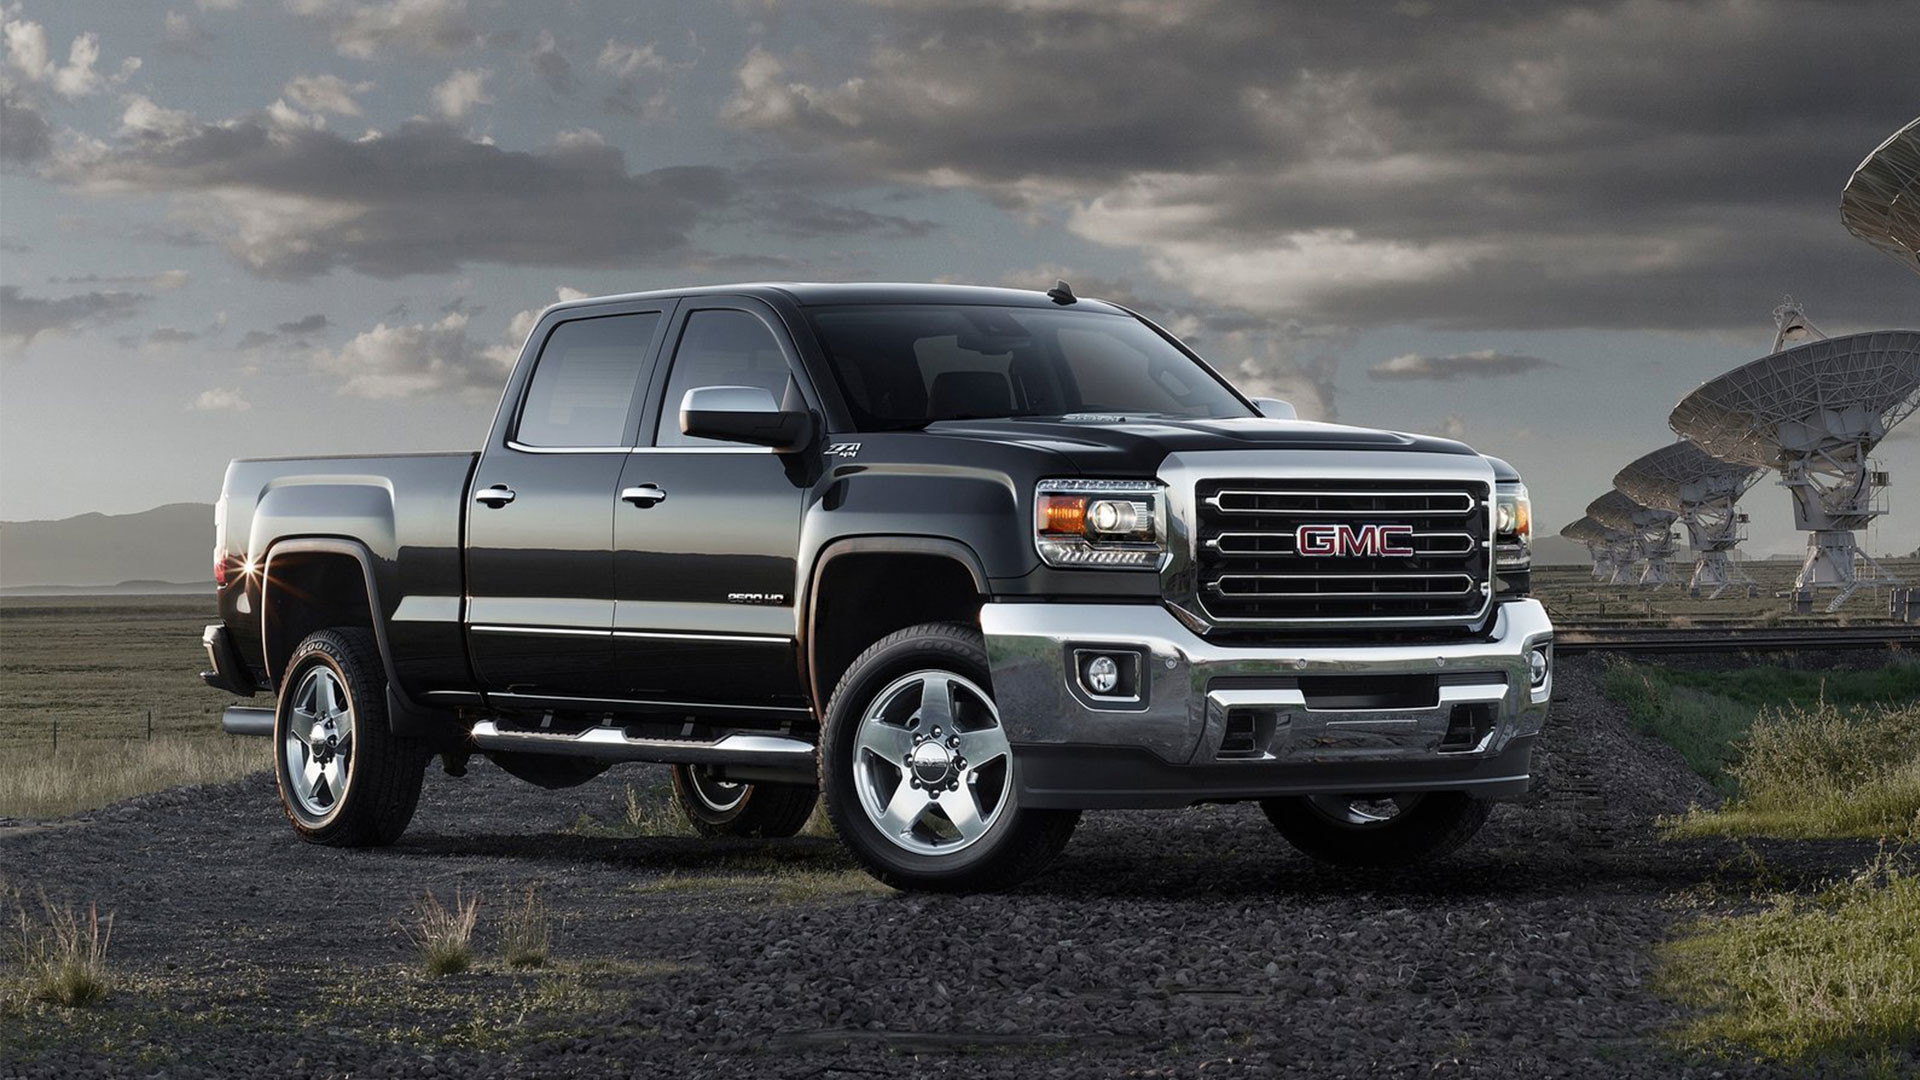 1920x1080 GMC Wallpaper. You can make GMC Sierra Wallpaper for your desktop  background, tablet,